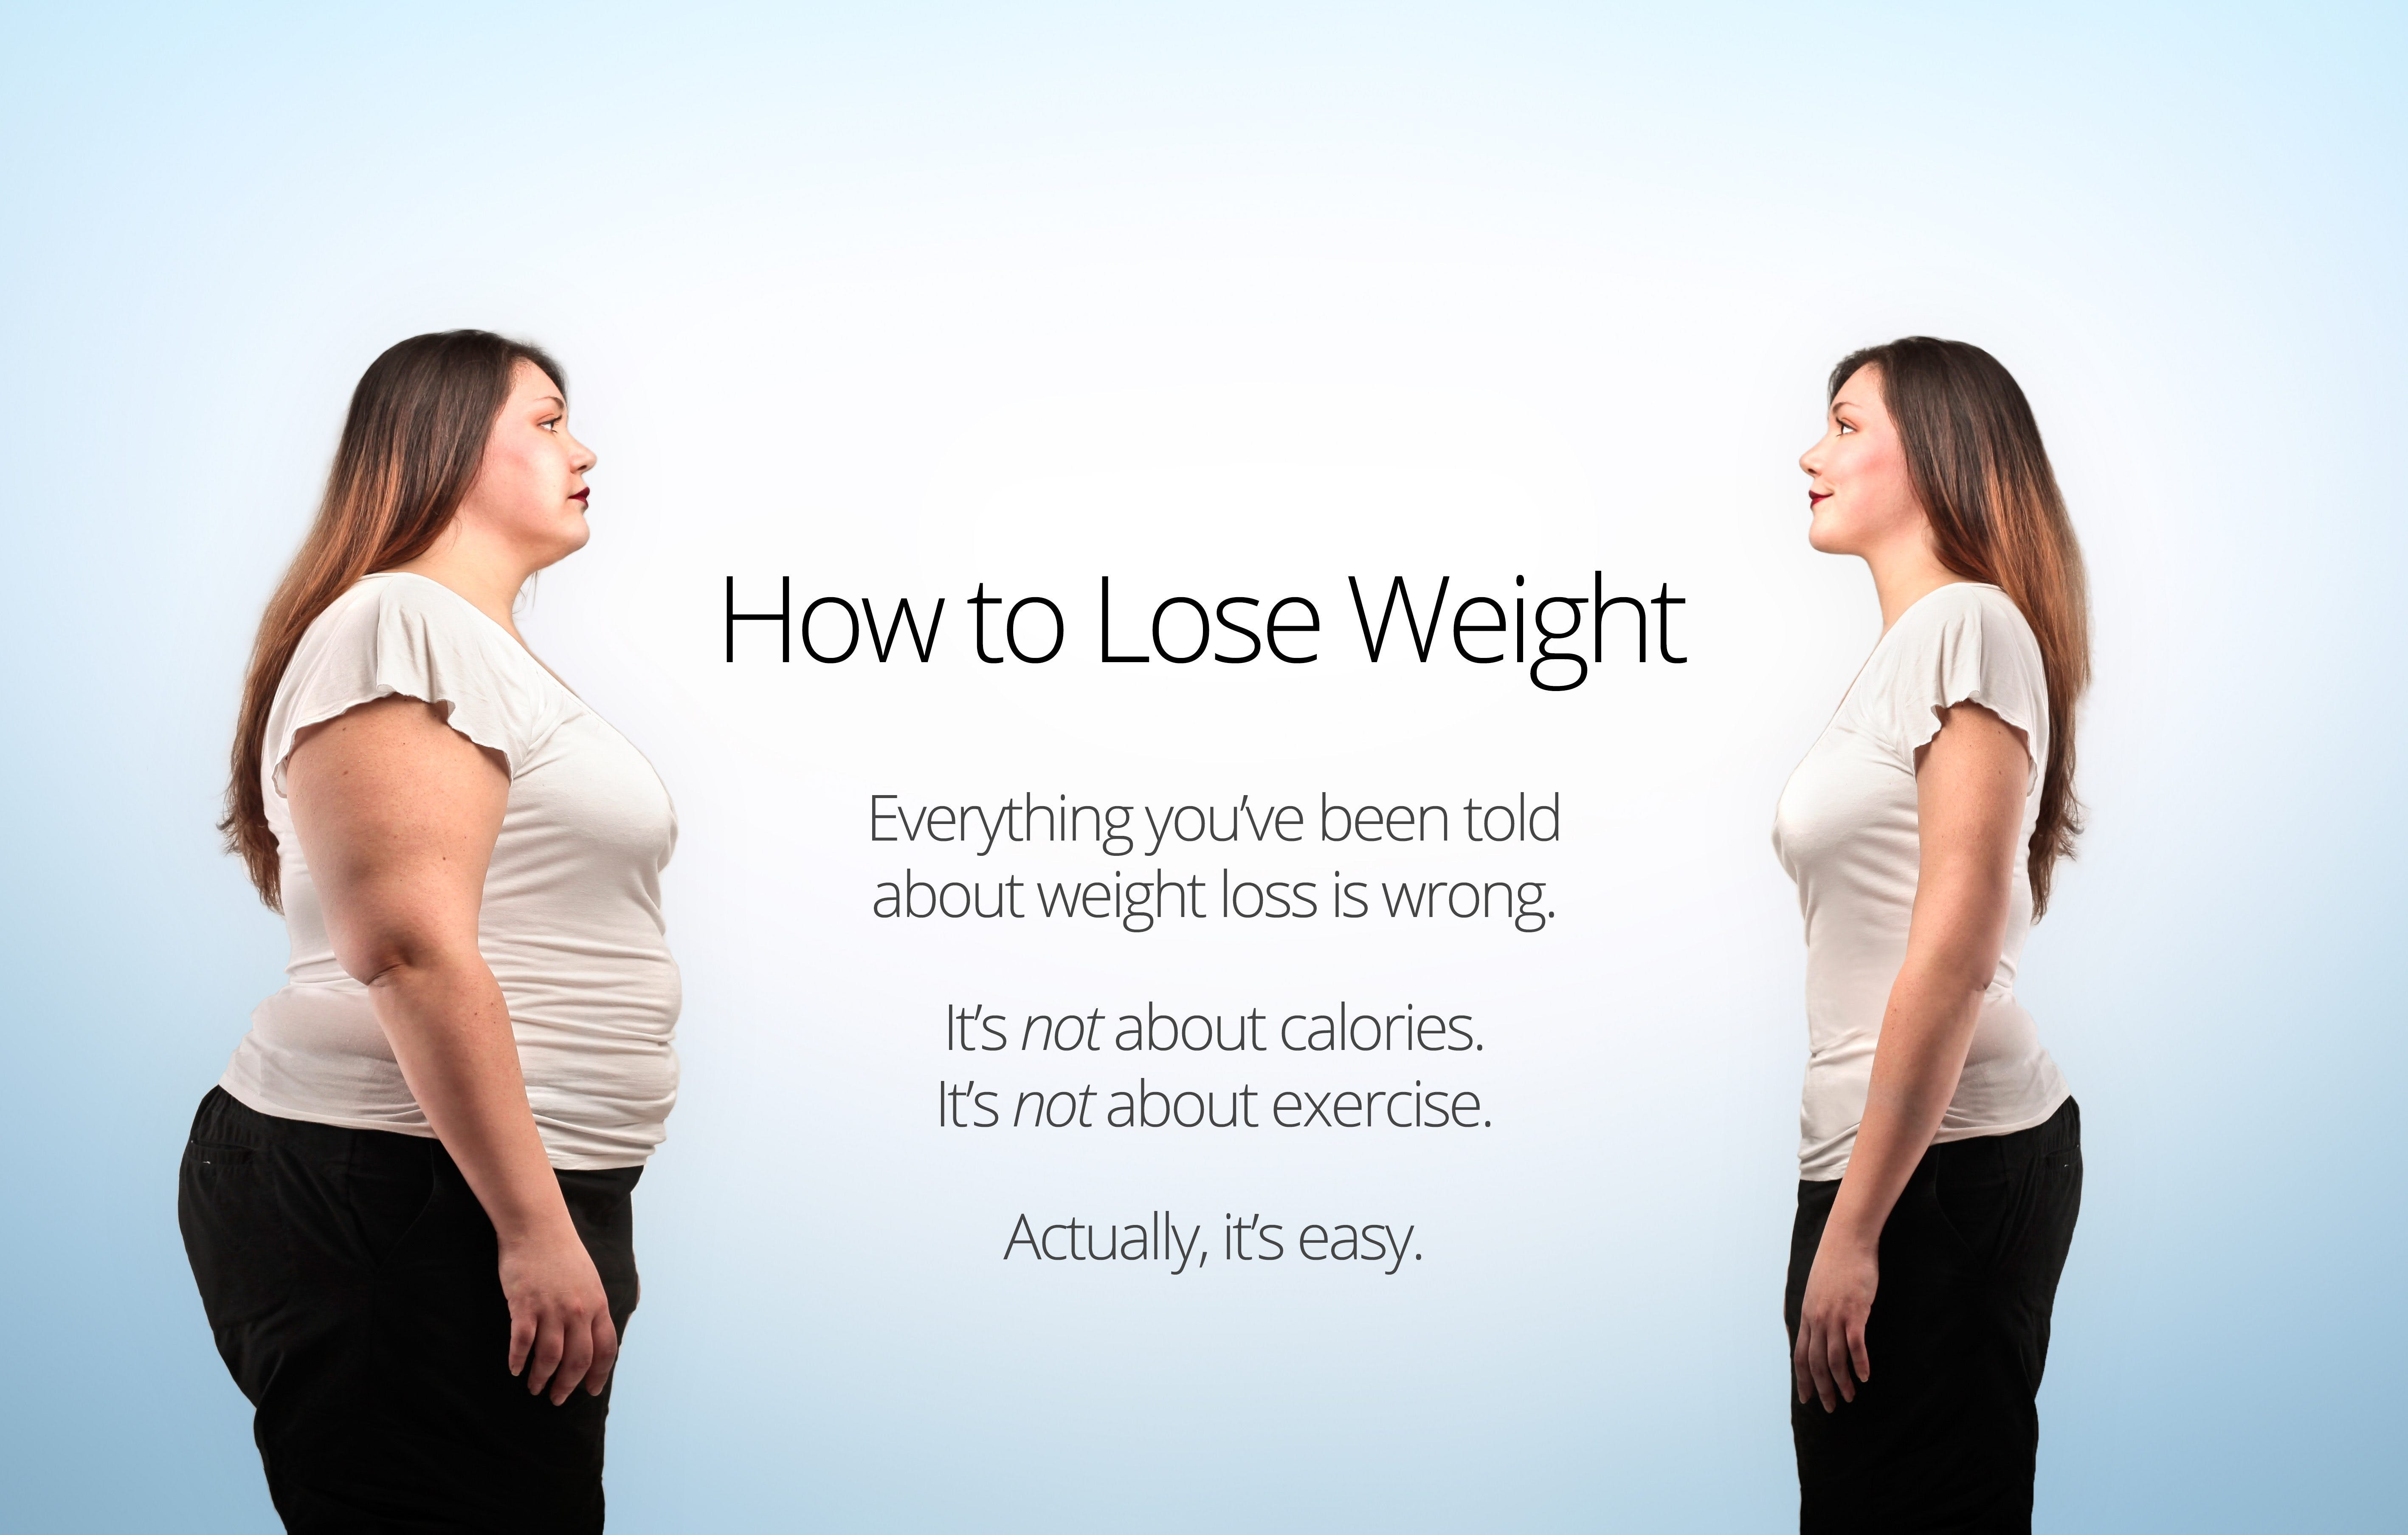 How to Lose Weight - The 18 Best Tips and Tricks